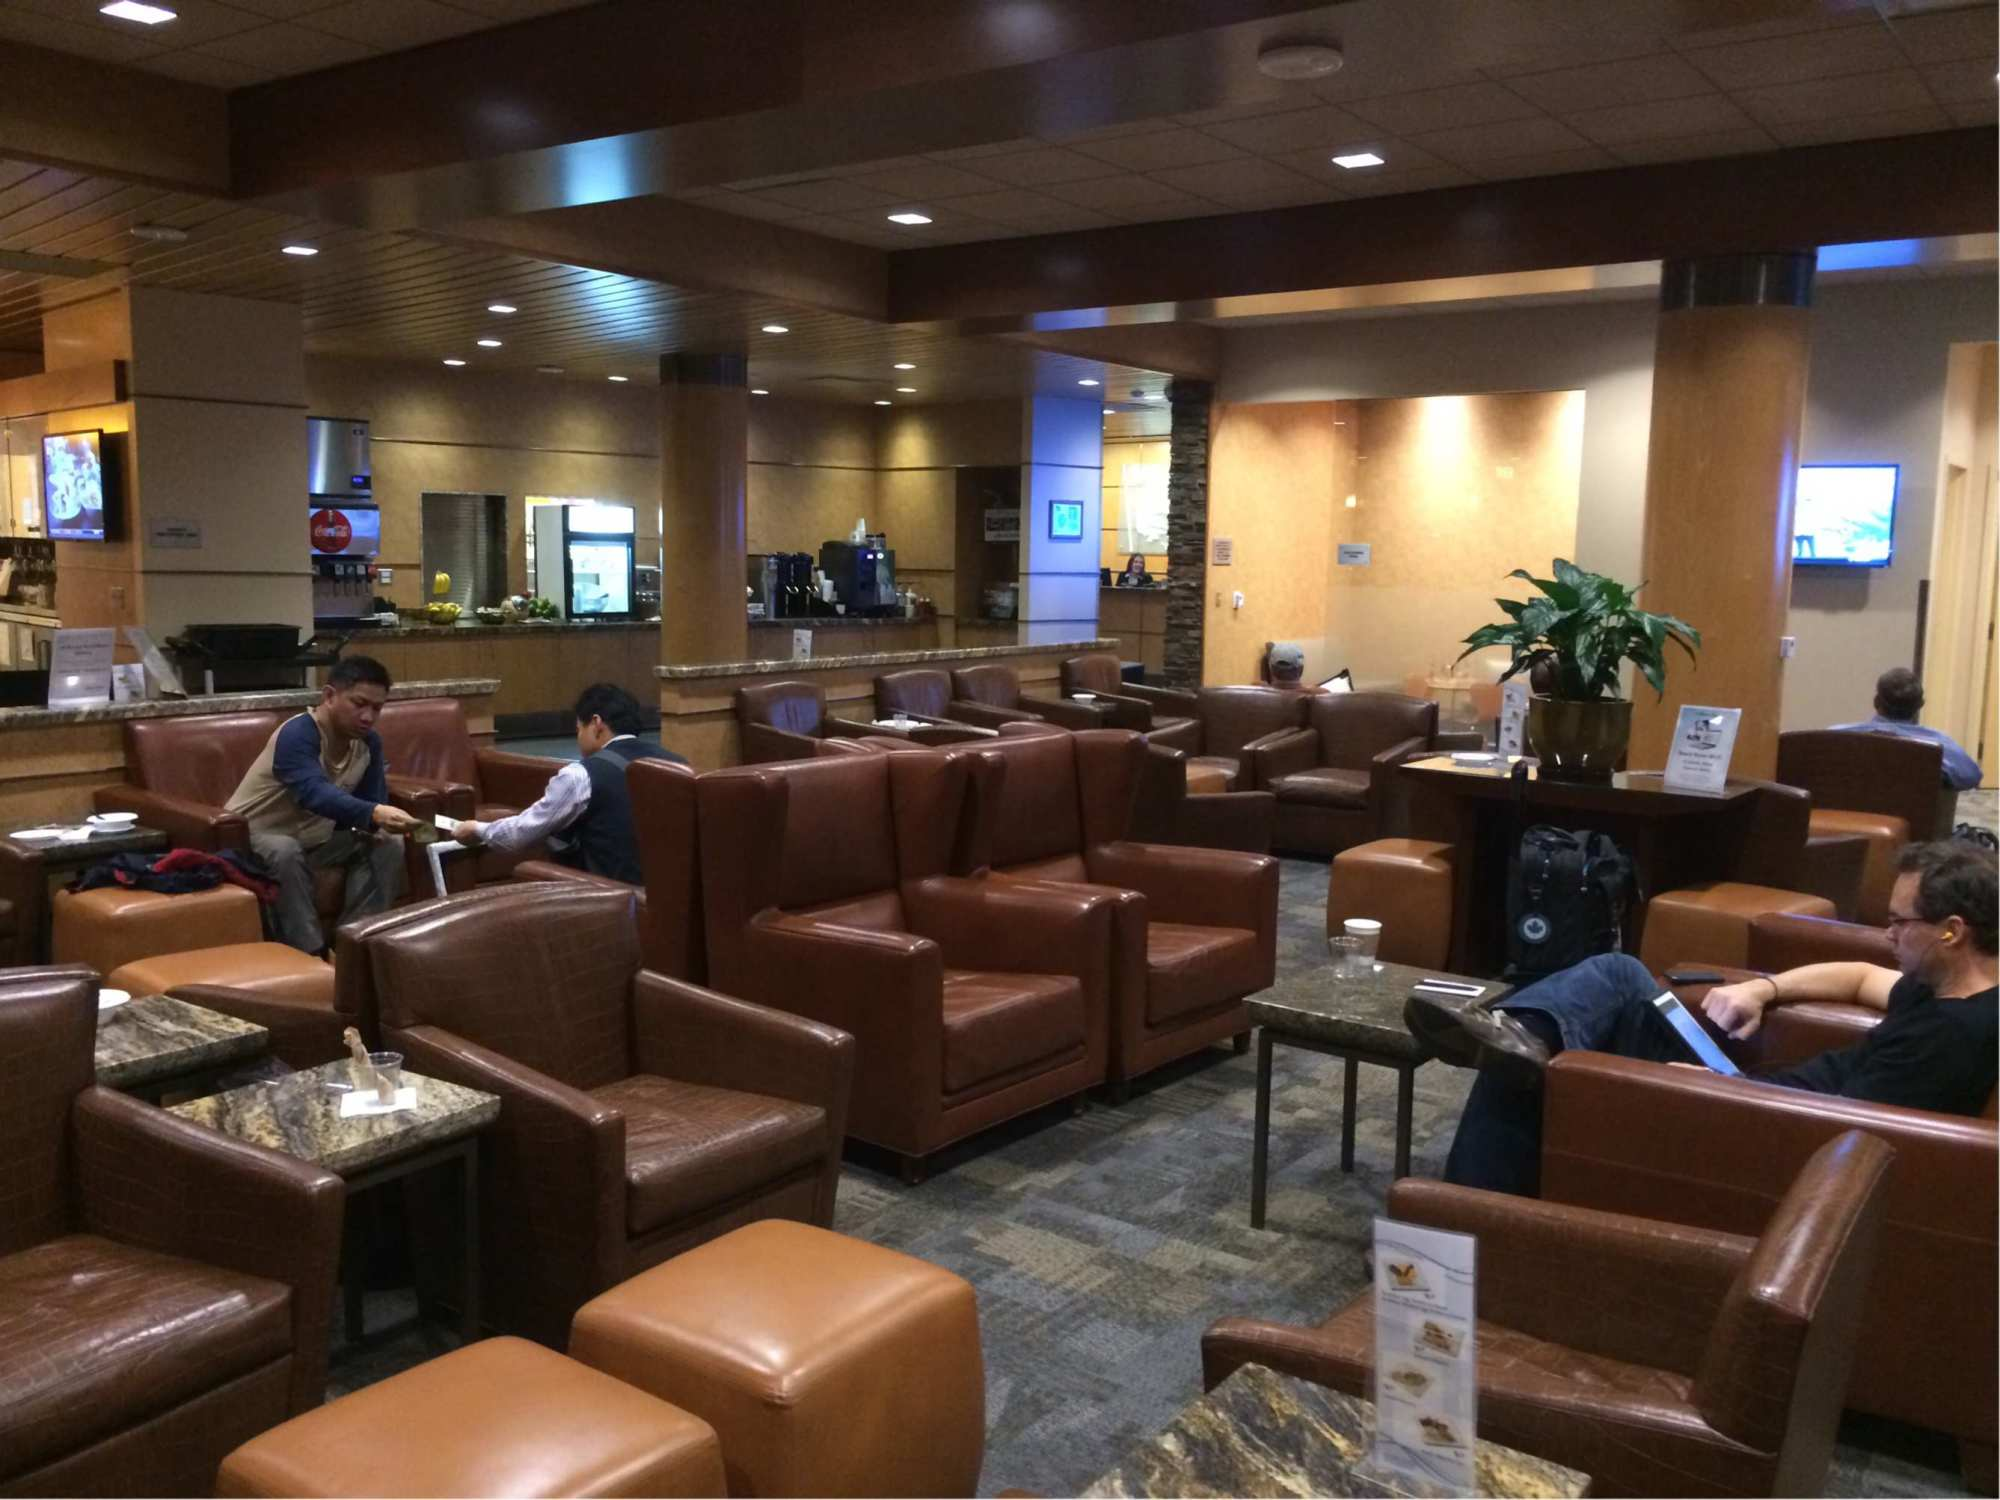 LAX: Alaska Airlines Alaska Lounge Reviews & Photos - Terminal 6 ...